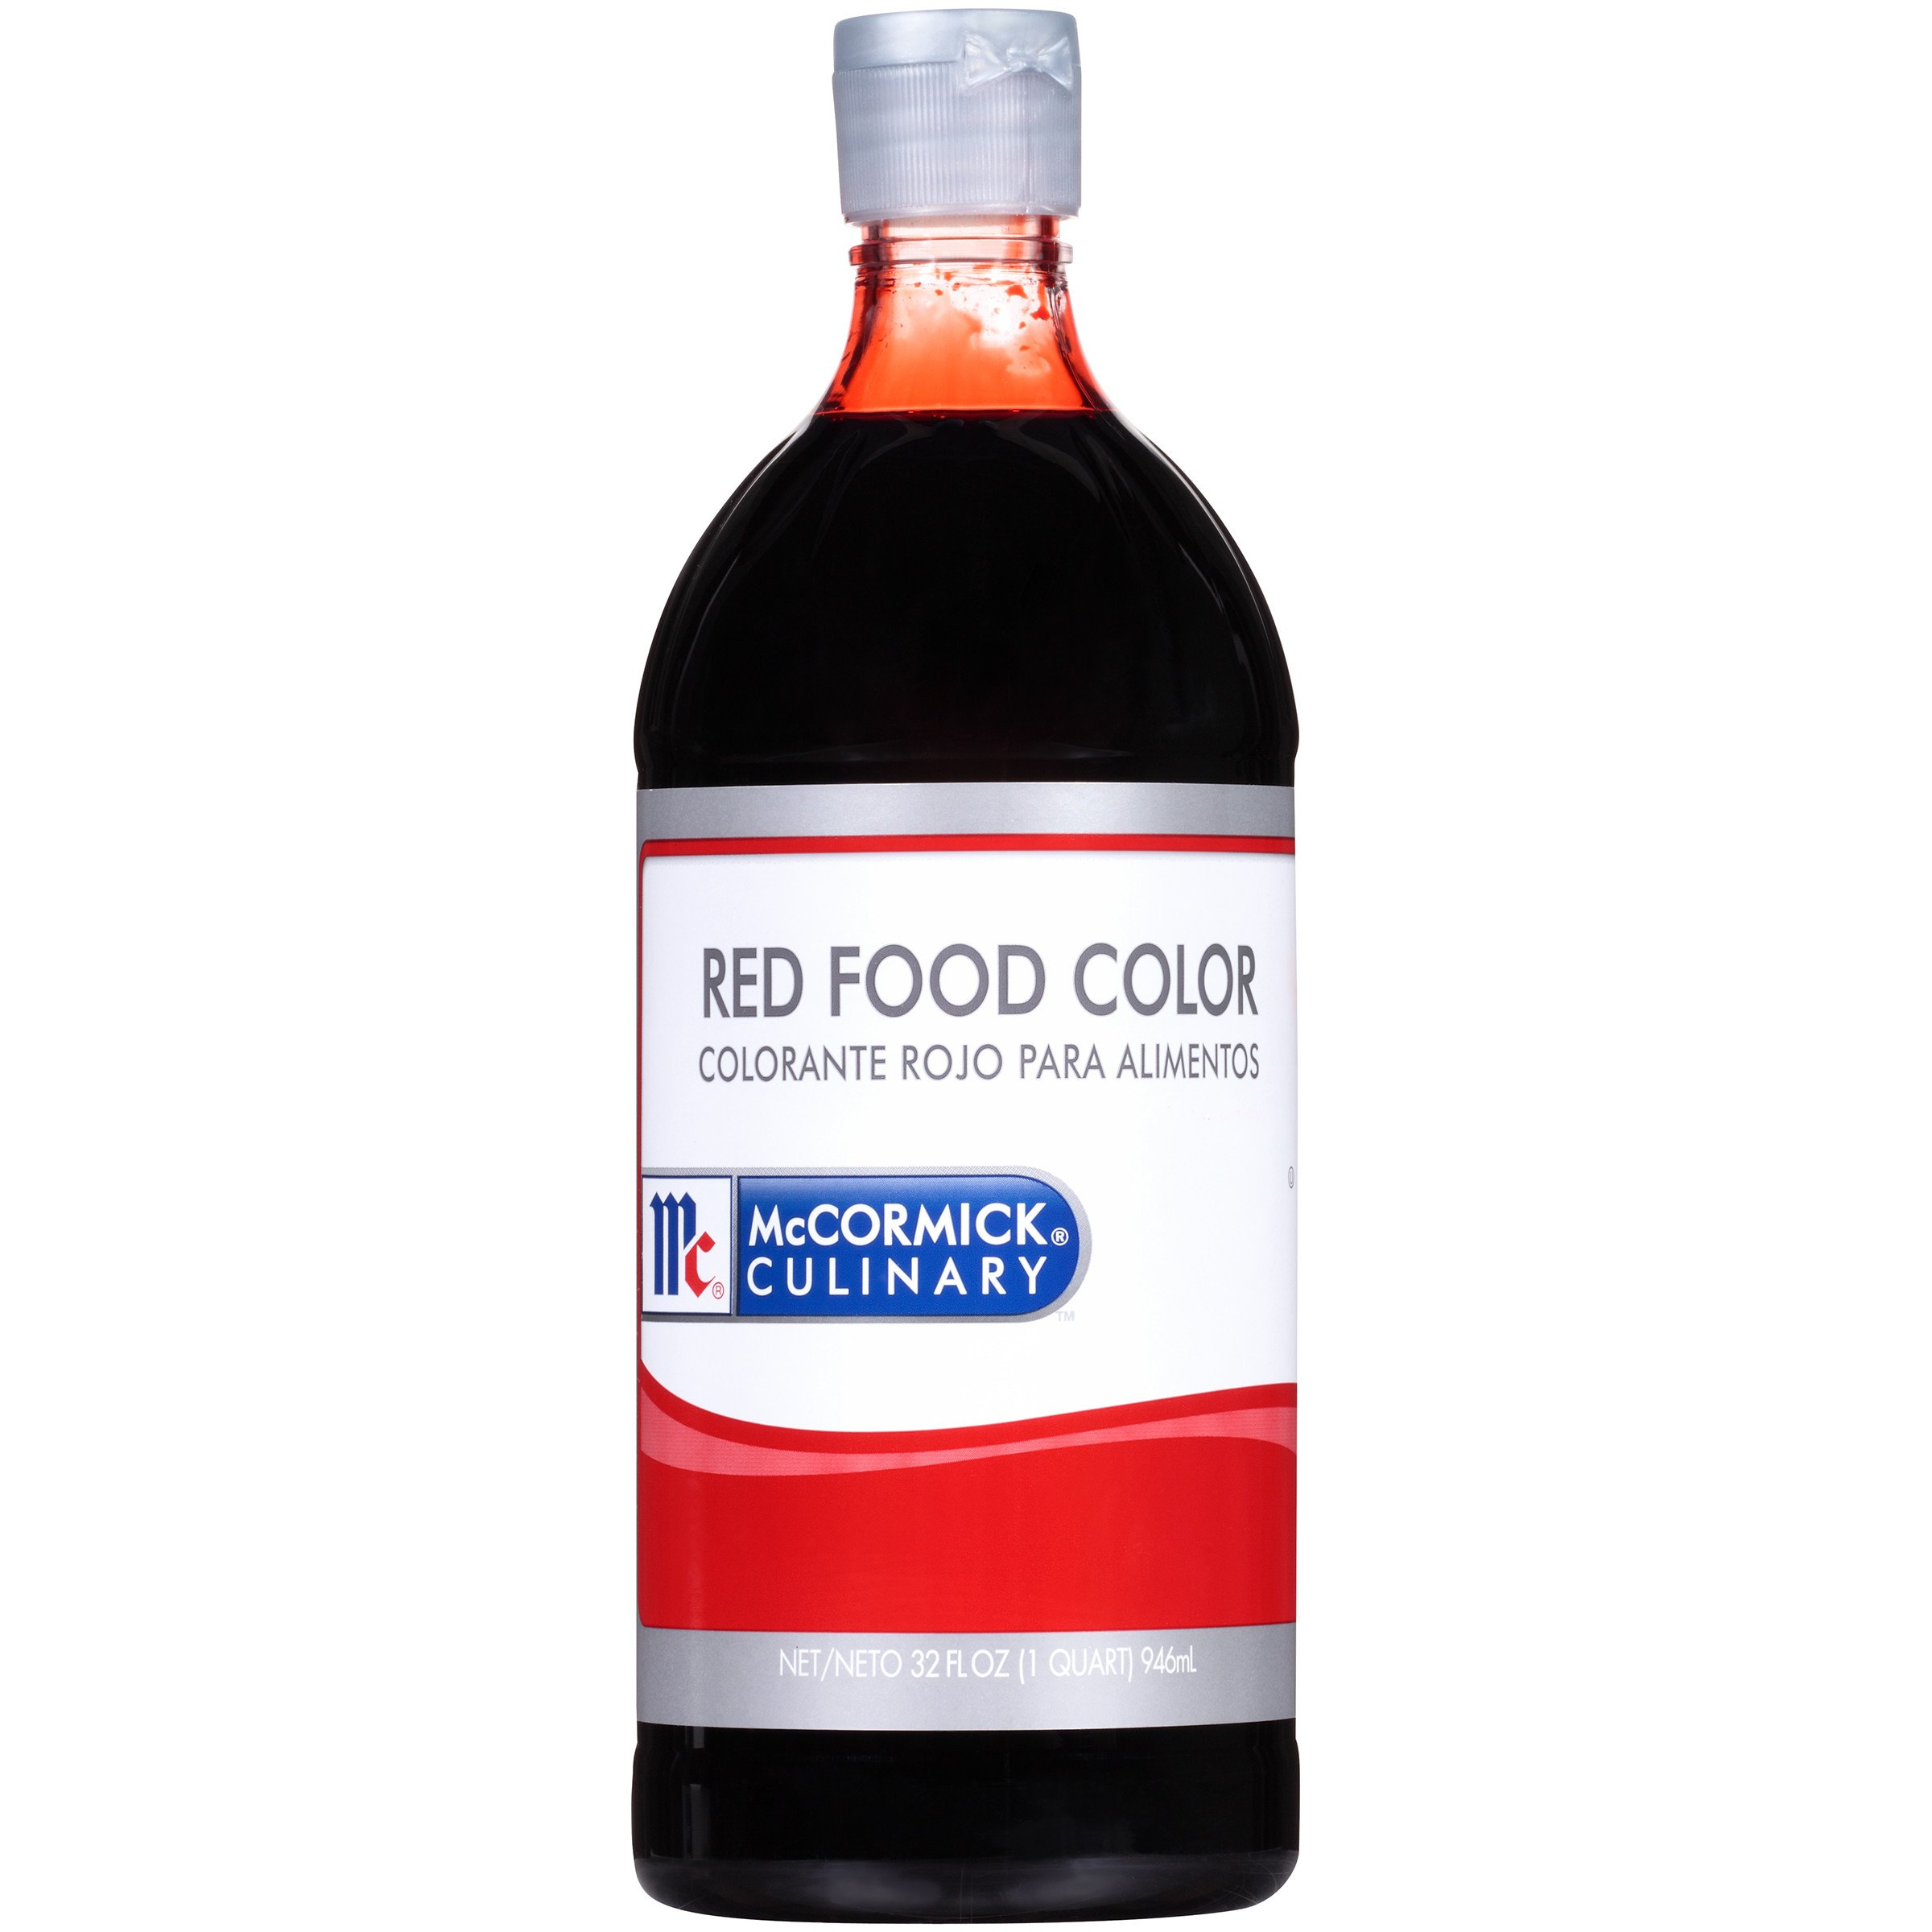 McCormick Culinary Red Food Color, Bakers Food Coloring, 32 fl oz (Packaging May Vary)